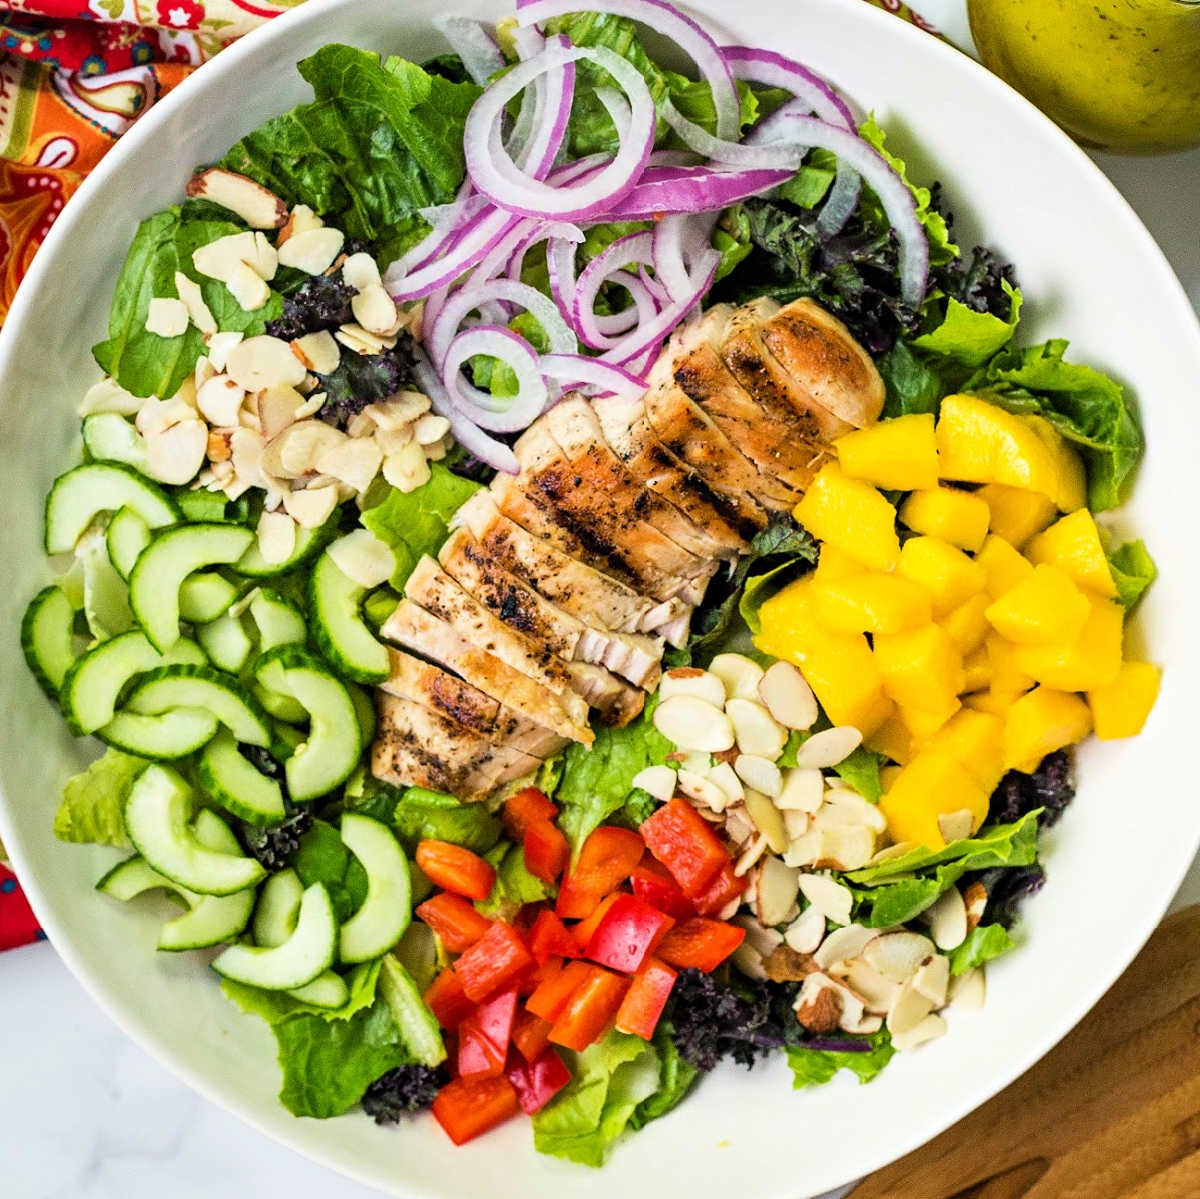 a large salad bowl with salad greens, chopped mango, cucumber, red bell pepper, red onions, and almonds with a sliced grilled chicken breast laying on top.